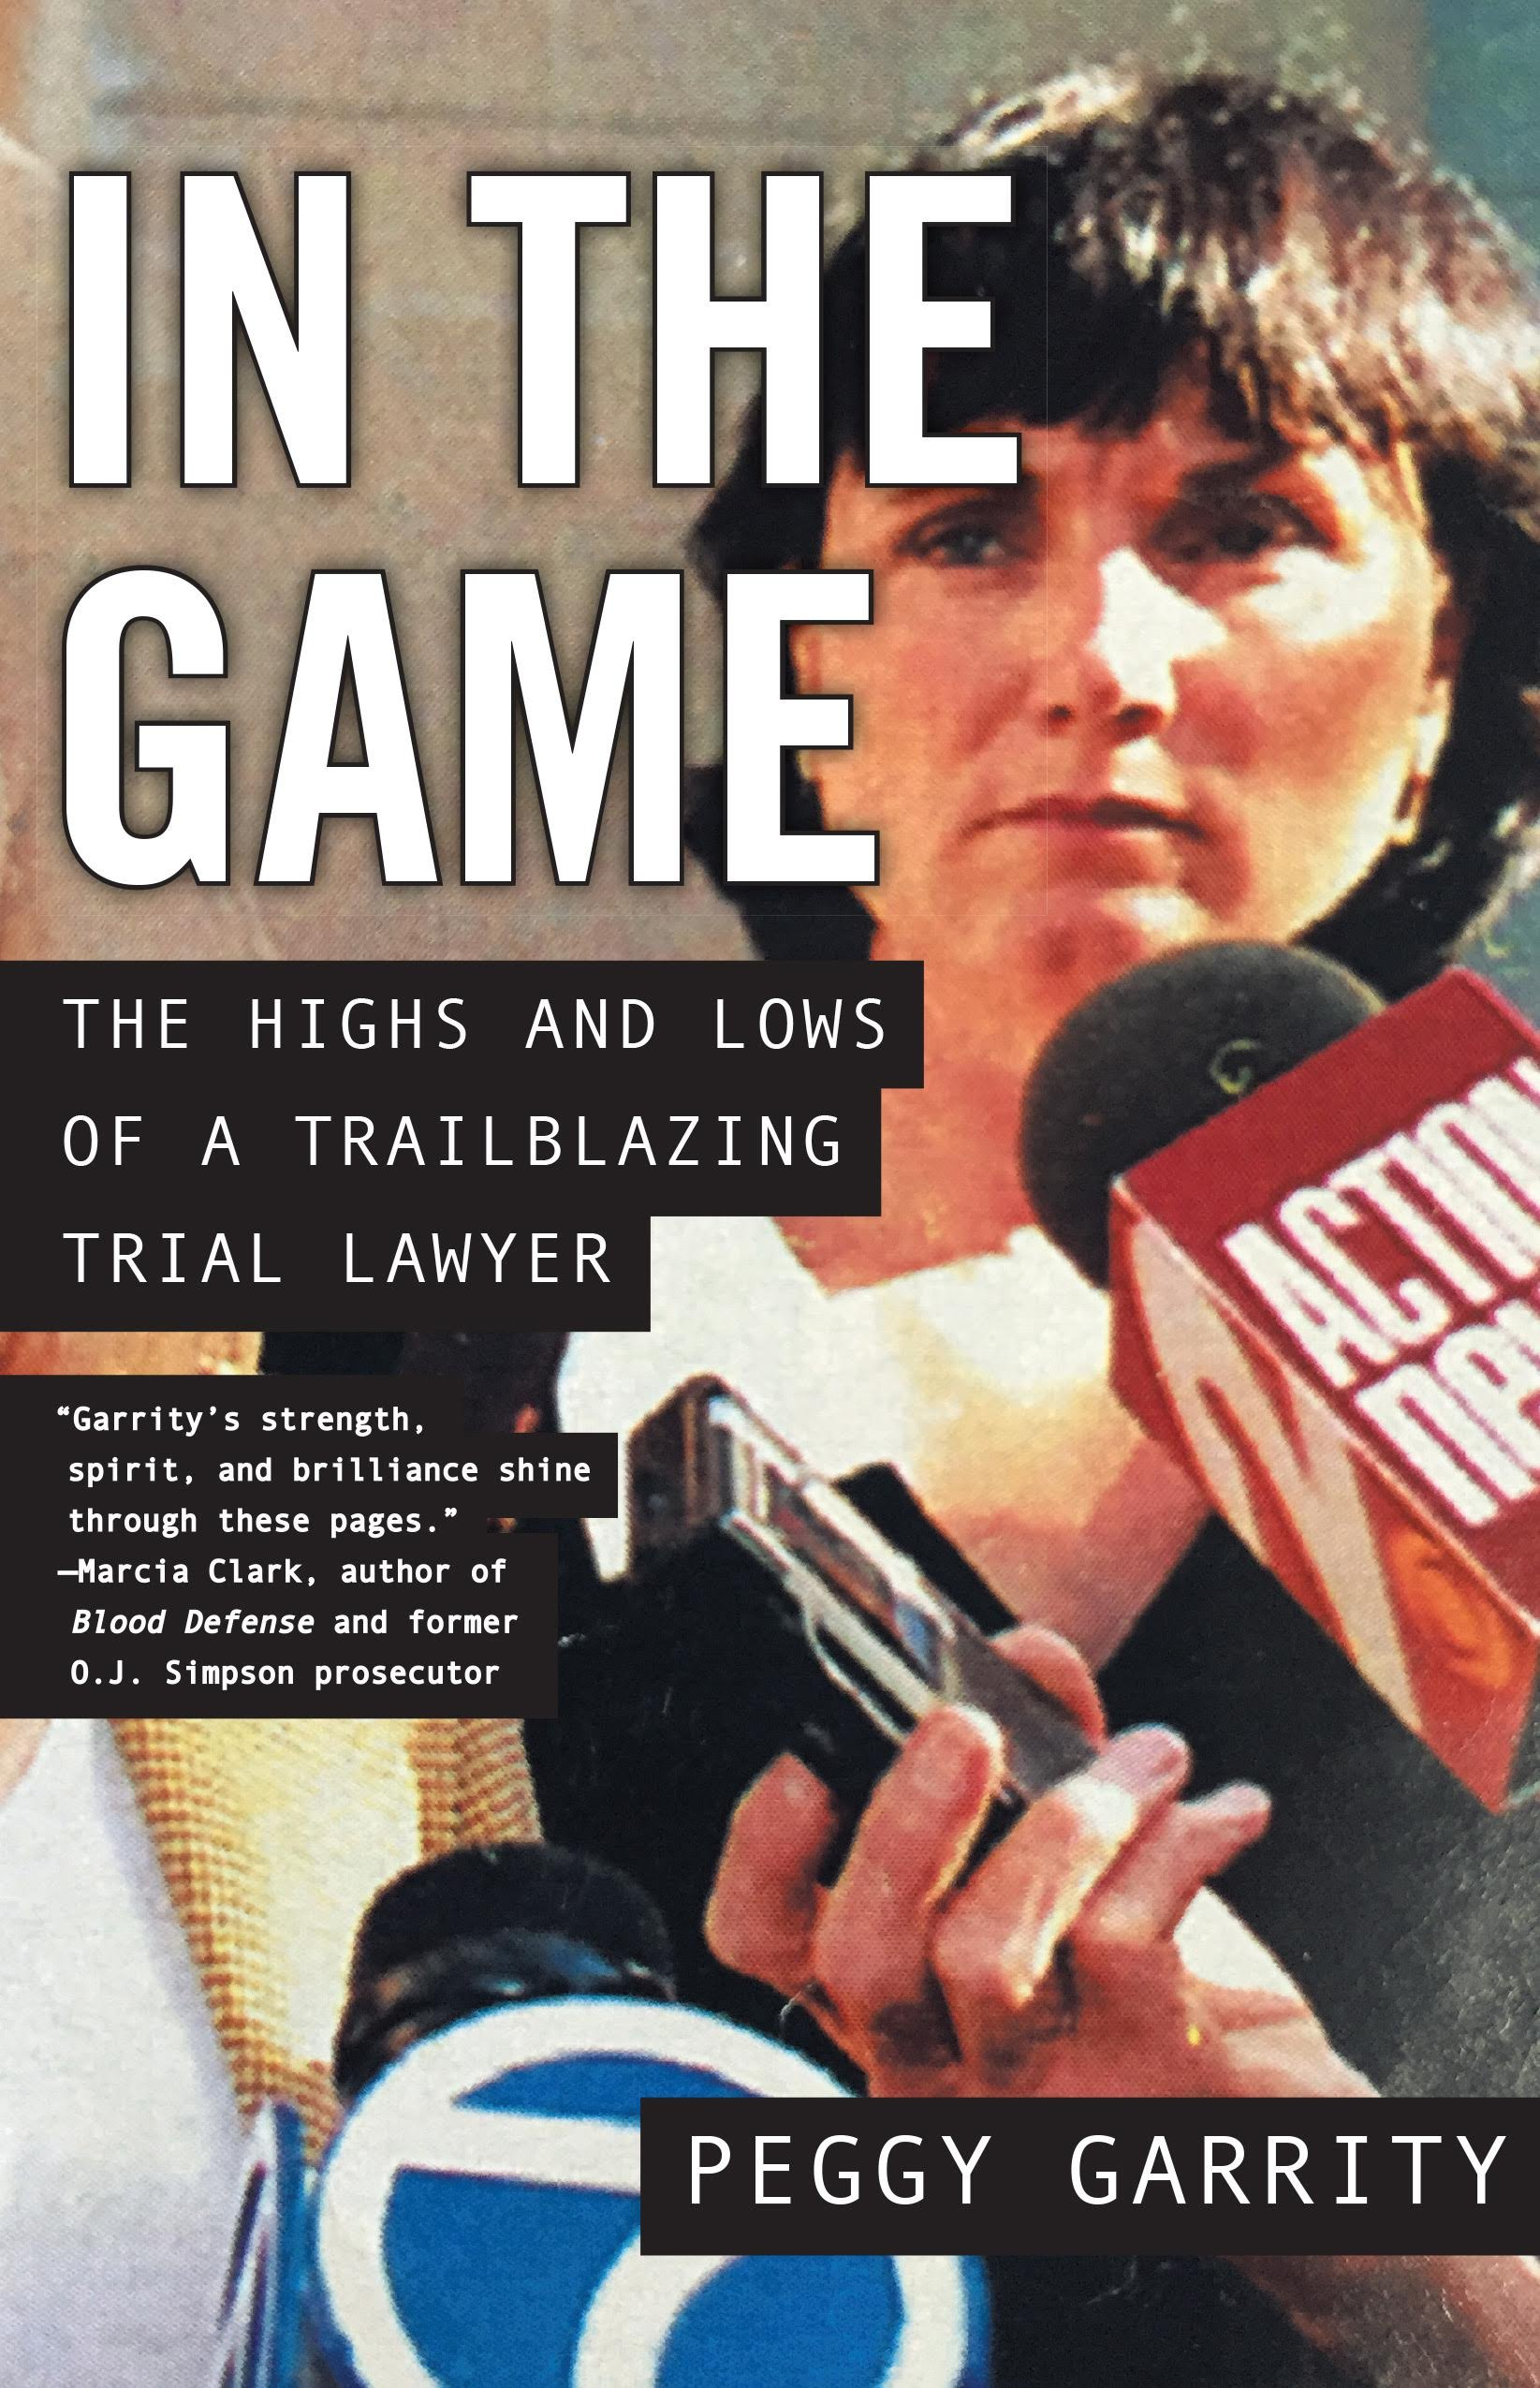 In the Game: The Highs and Lows of a Trailblazing Trial Lawyer PDF